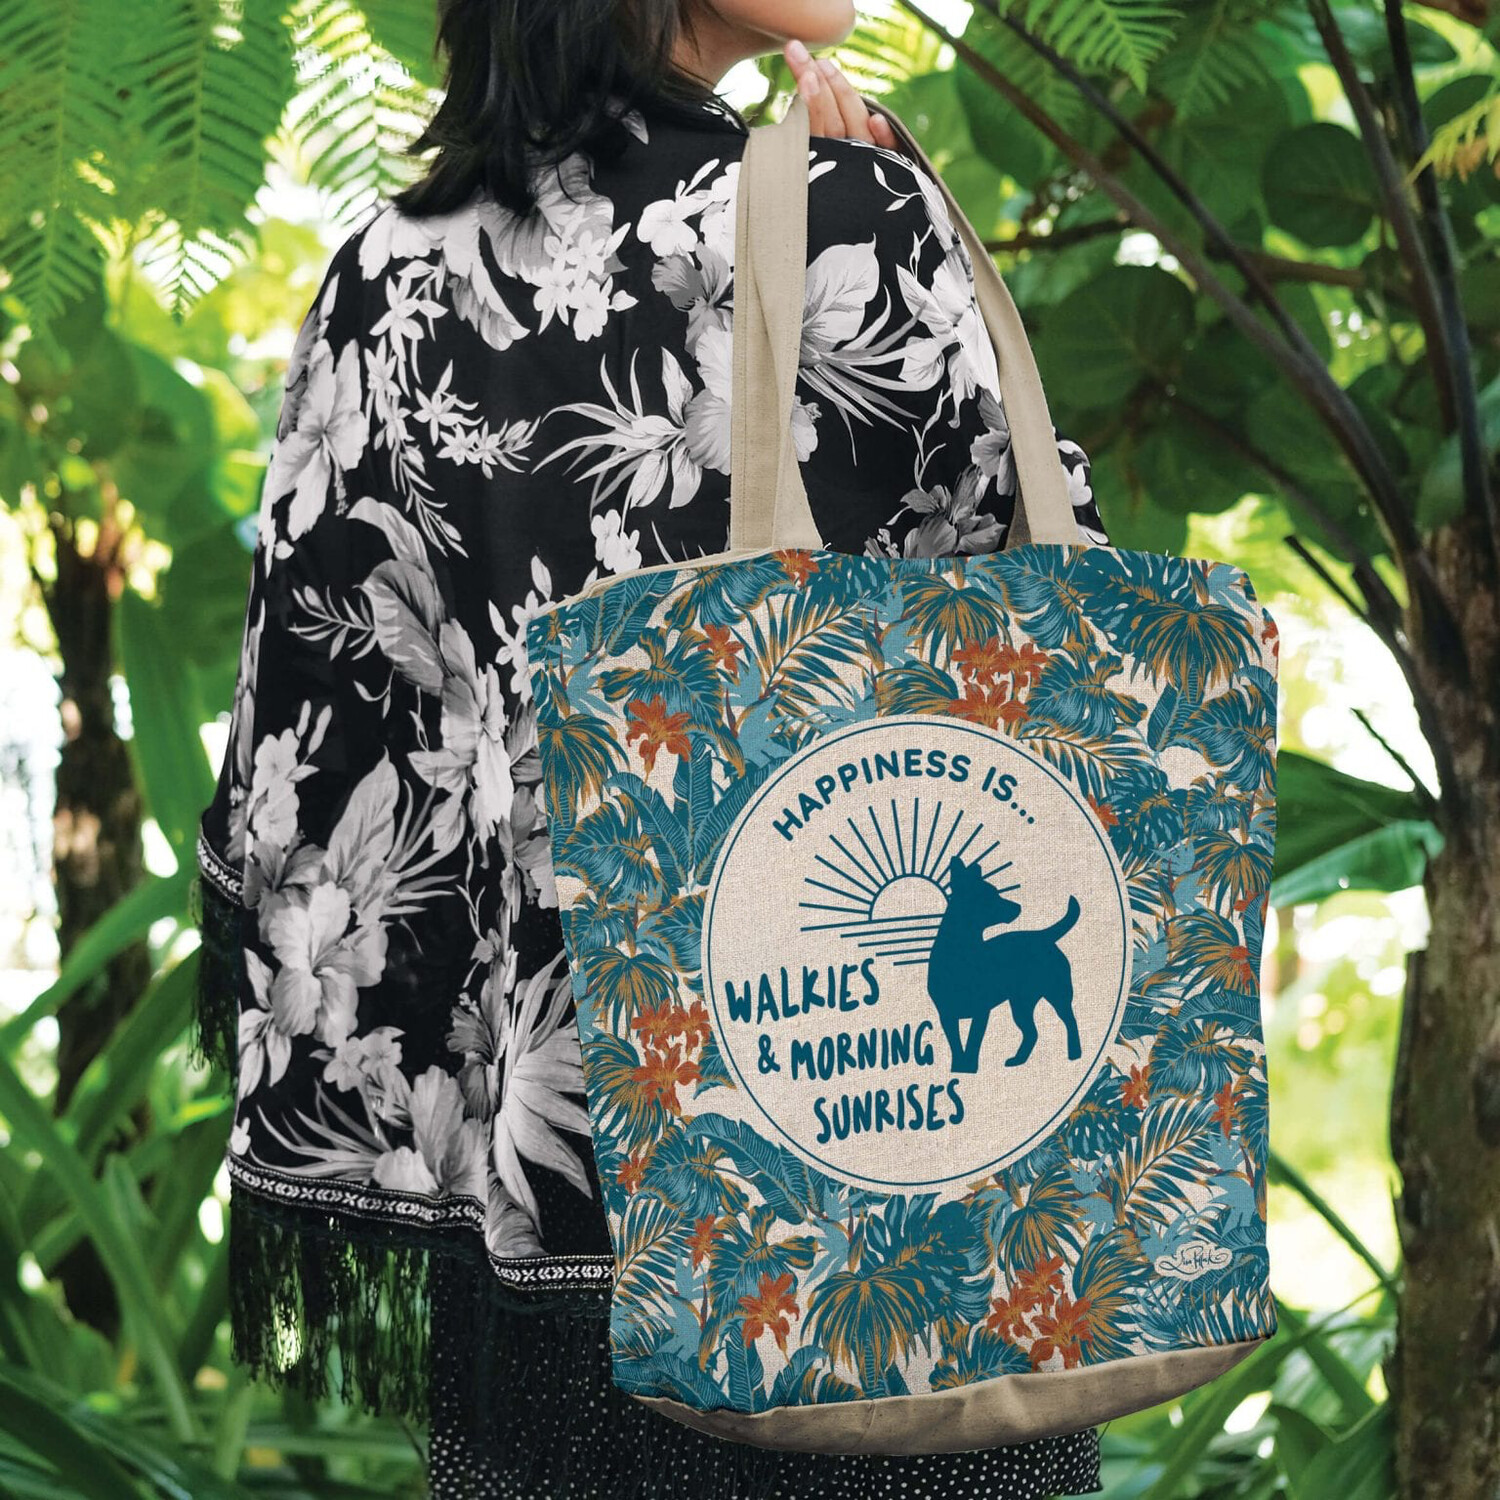 Lisa Pollock Linen/Poly Shopping Tote - Happiness Is.... Walkies & Morning Sunrises